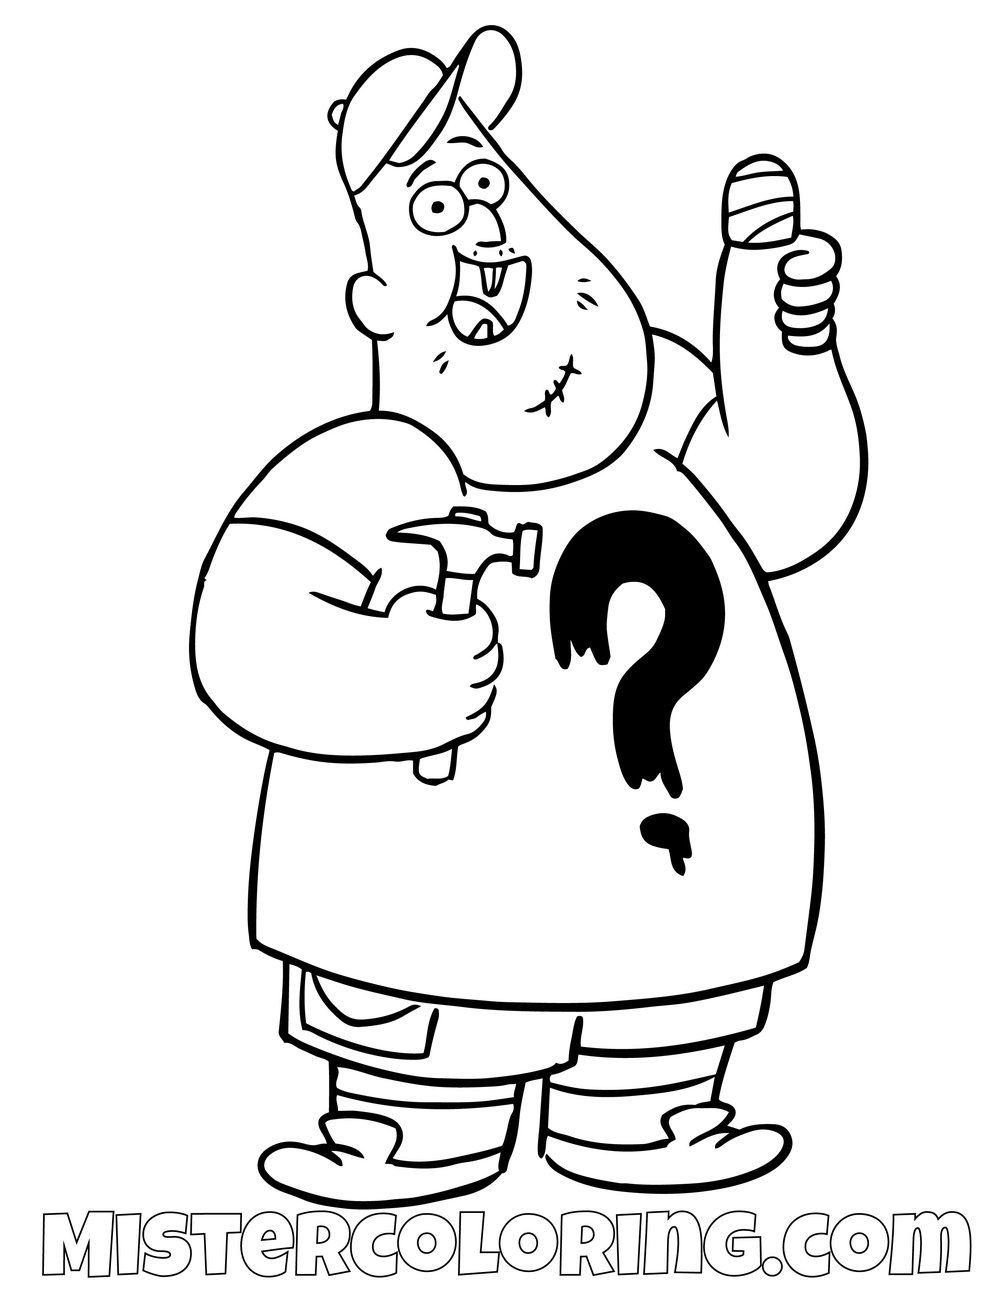 Soos Ramirez Gravity Falls Coloring Pages For Kids  Willkommen in